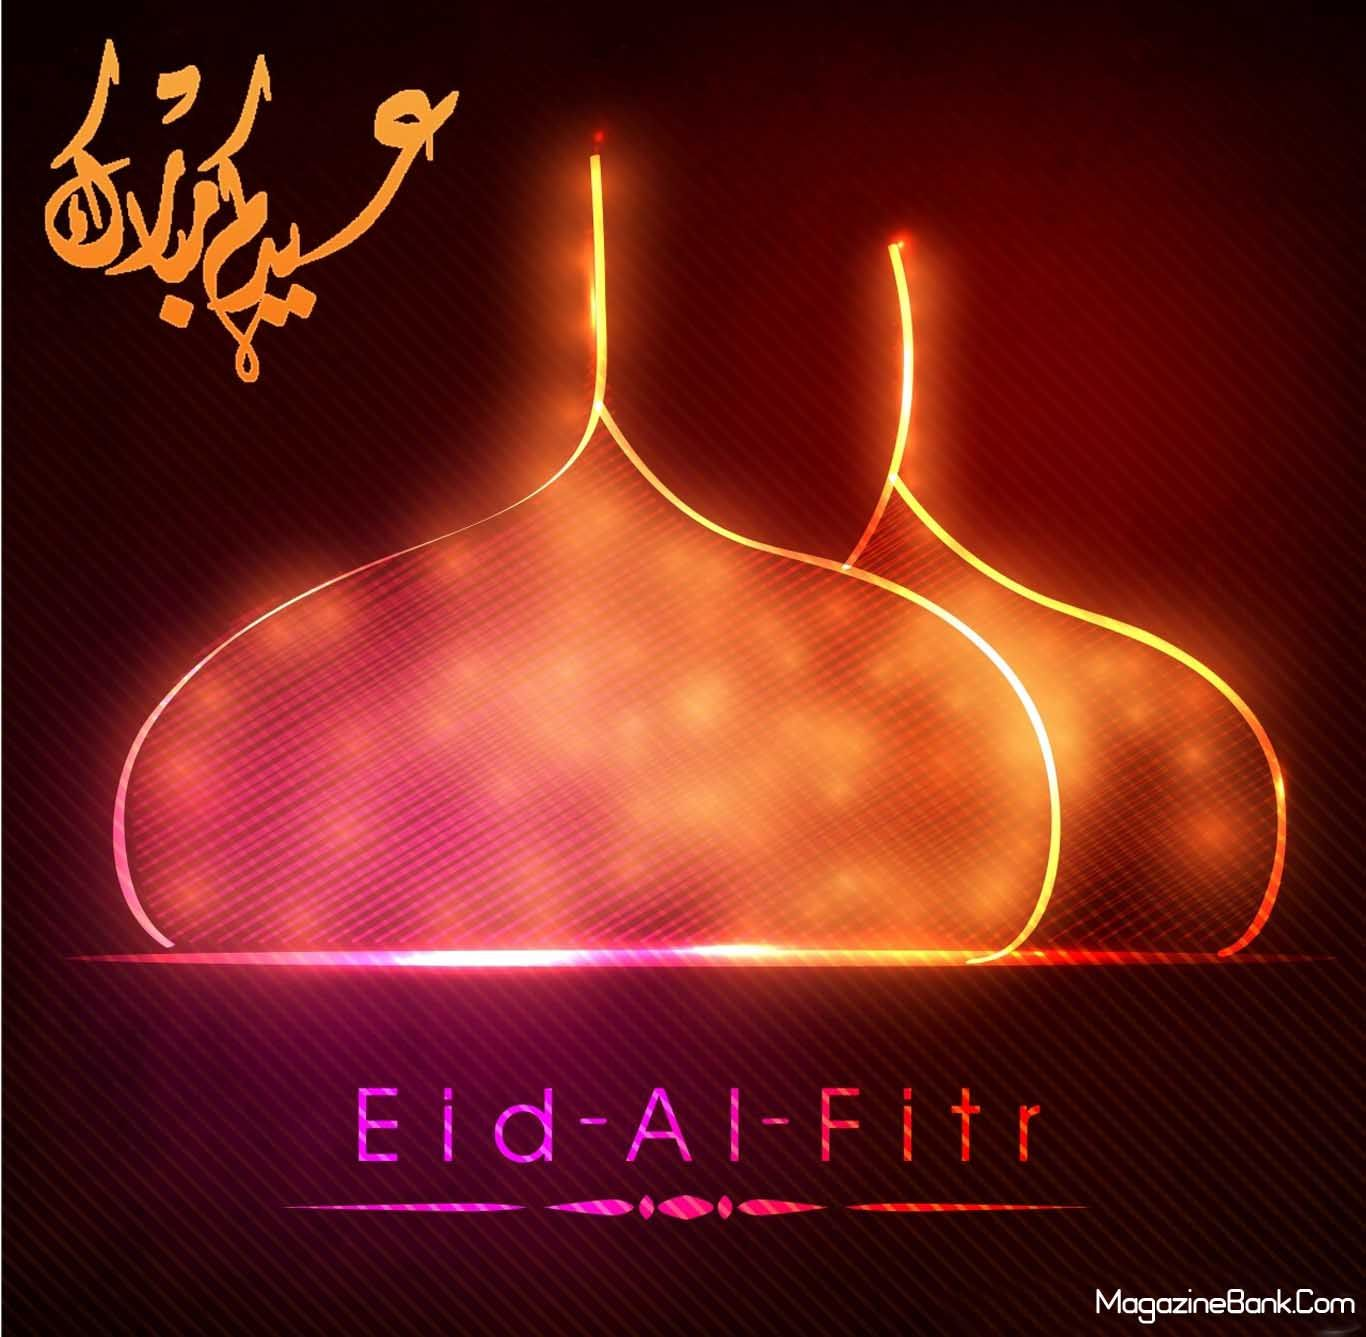 Eid Mubarak 2015 Images And HD Wallpapers Free Download